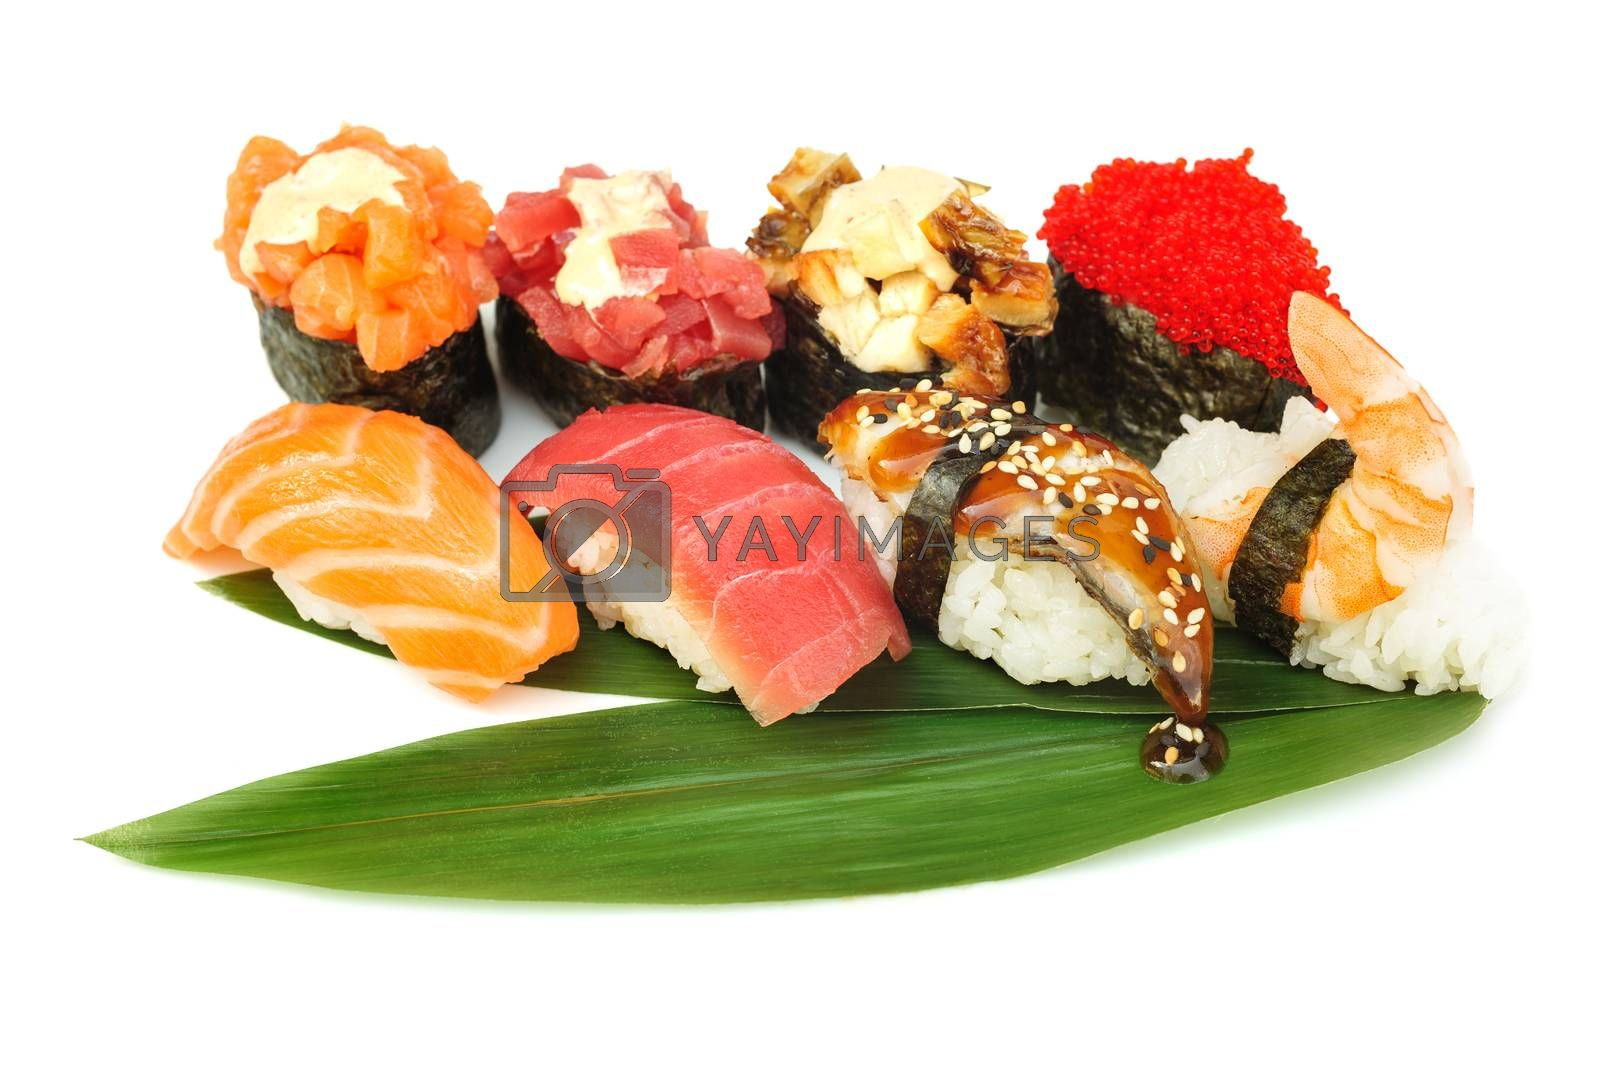 Sushi set assorrted rolls on solated on white background